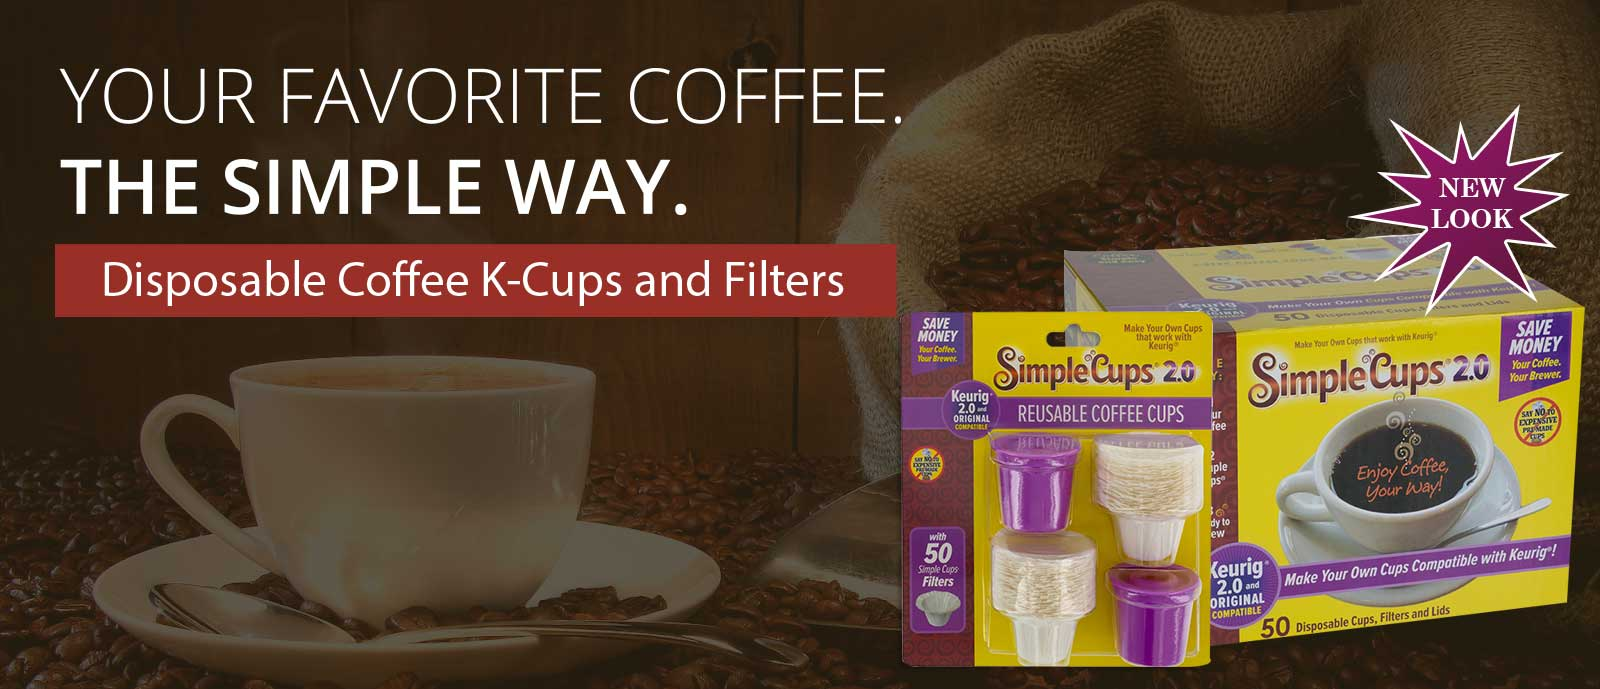 Simple Cups Coffee Disposable Coffee Cups